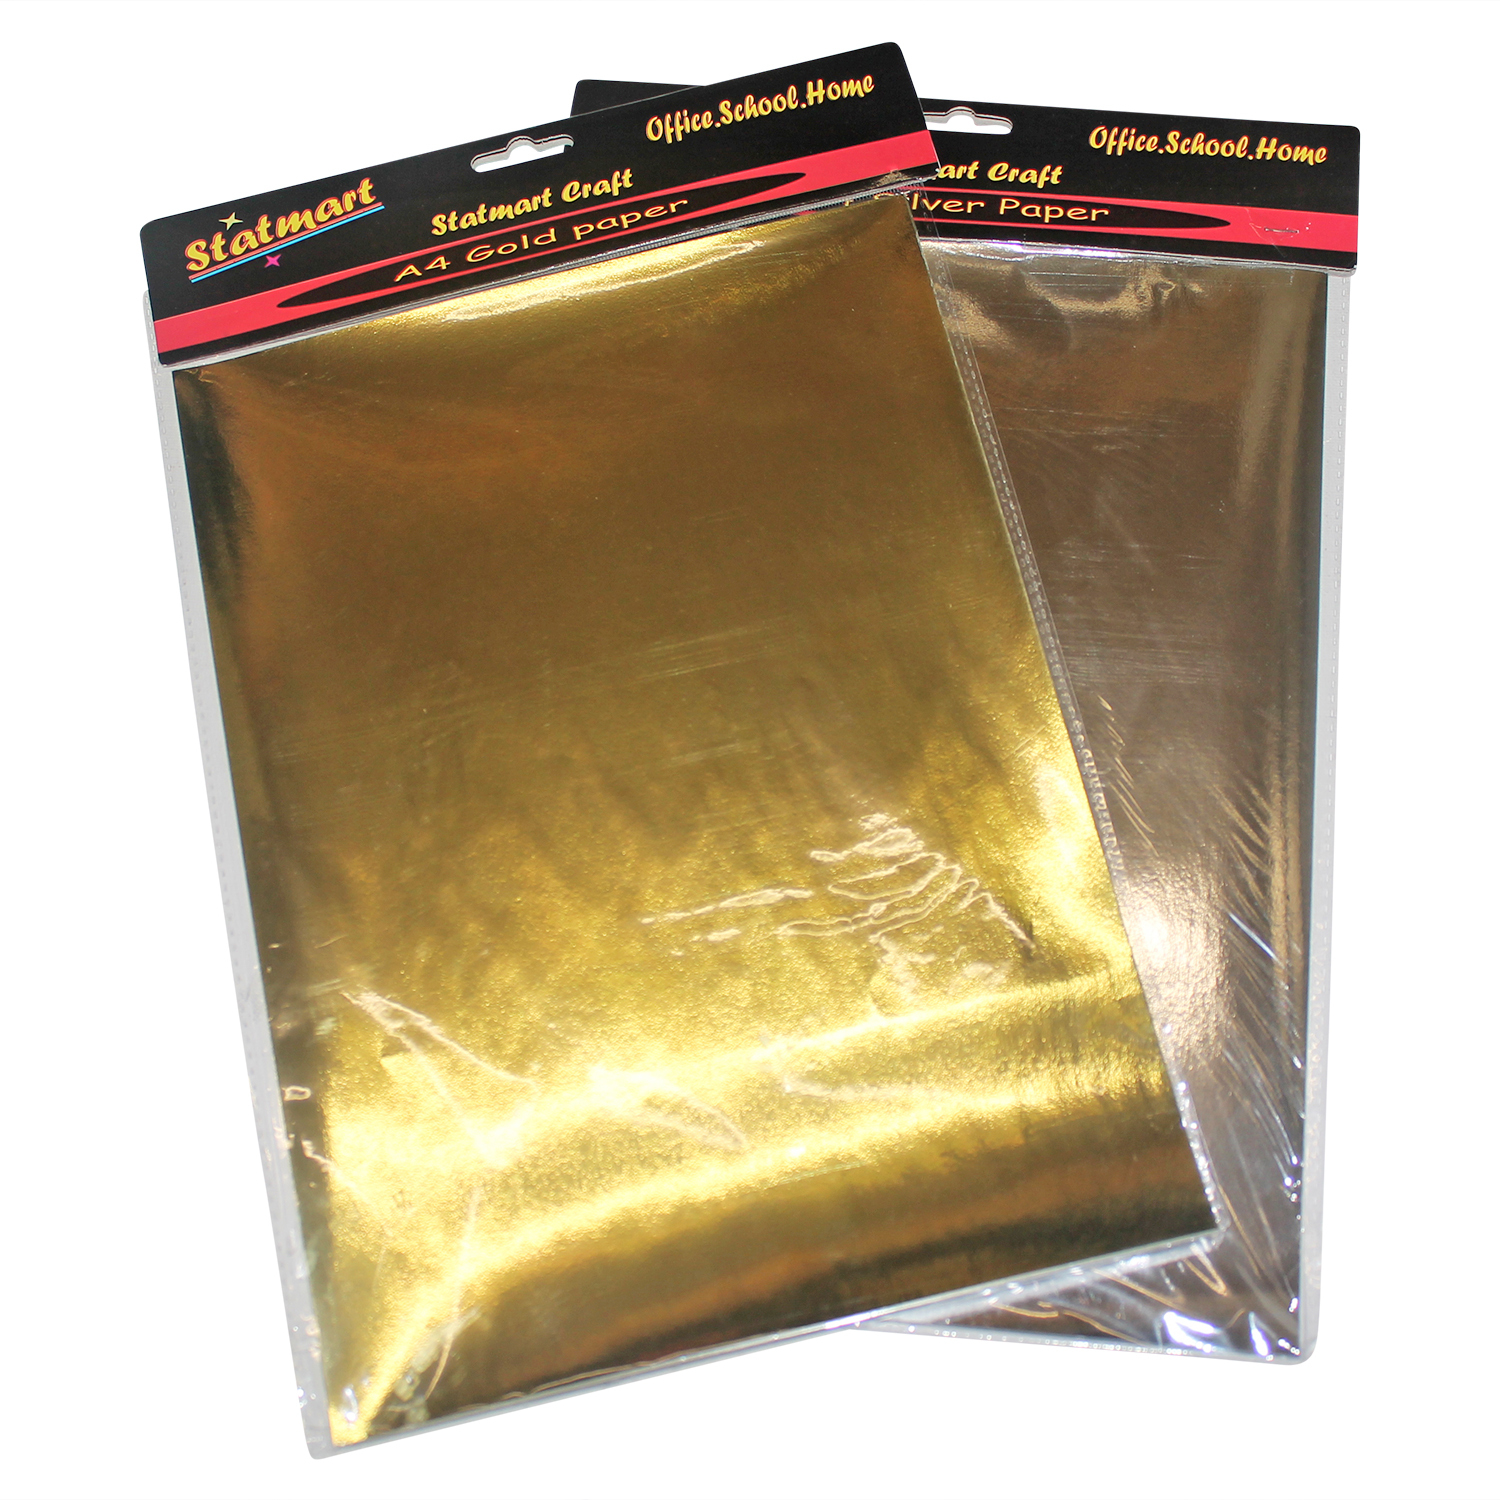 10pce A4 Metallic Silver Or Gold Craft Paper 80gsm Sheets